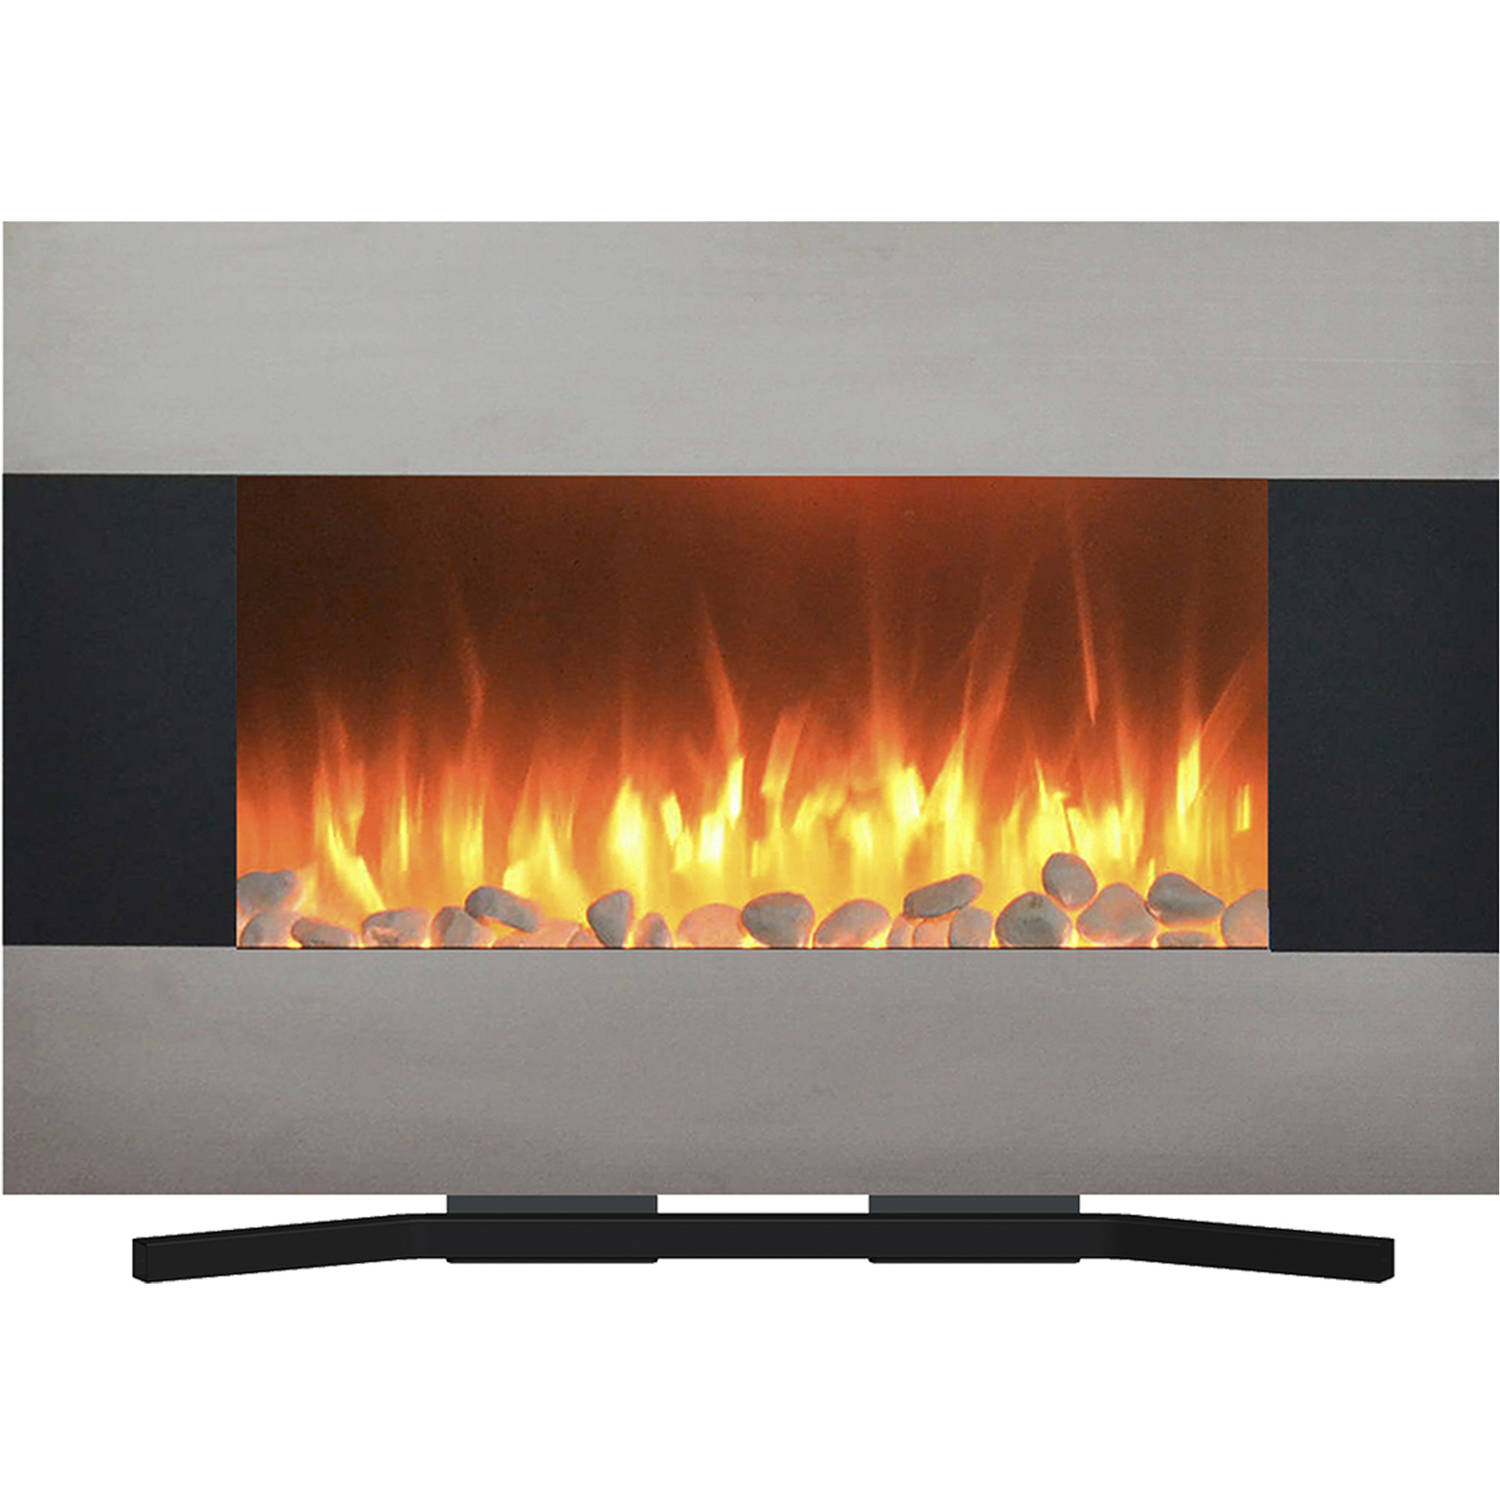 electric wall northwest color hung dual fireplace led reviews pin wayfair